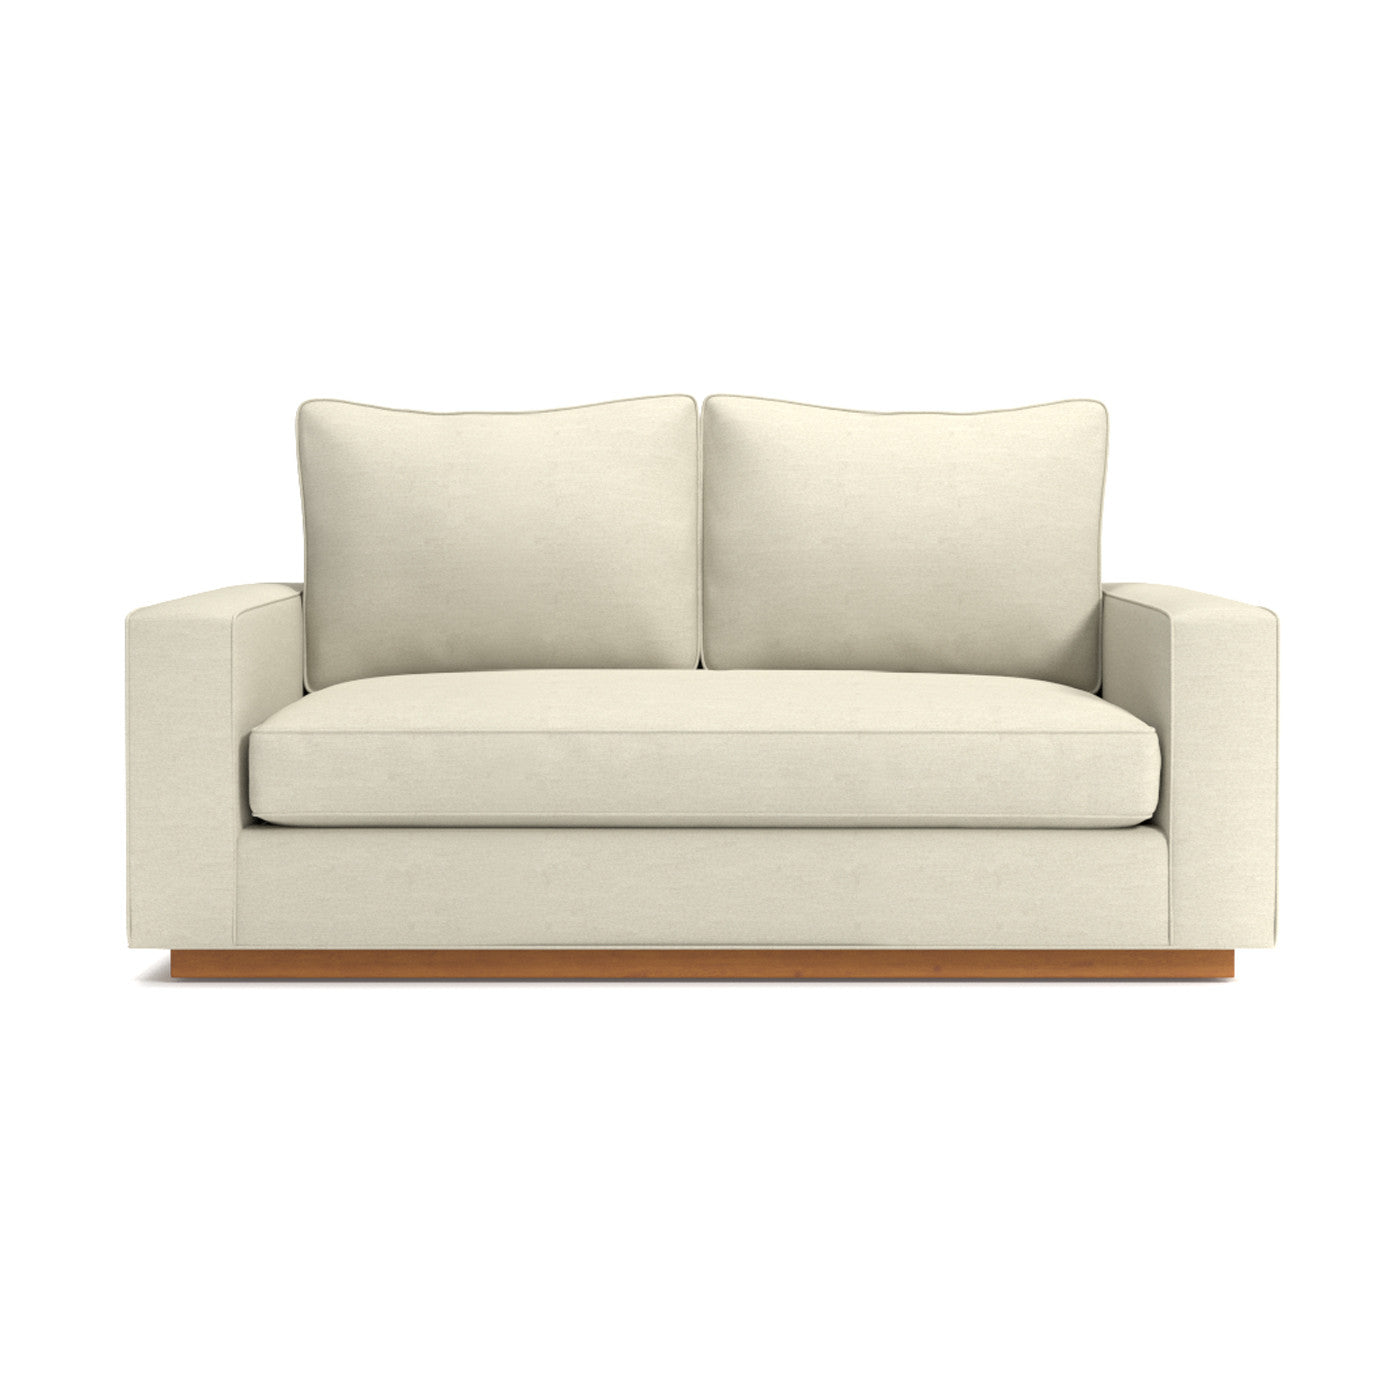 Harper Apartment Size Sleeper Sofa CHOICE OF FABRICS - Apt2B - 1